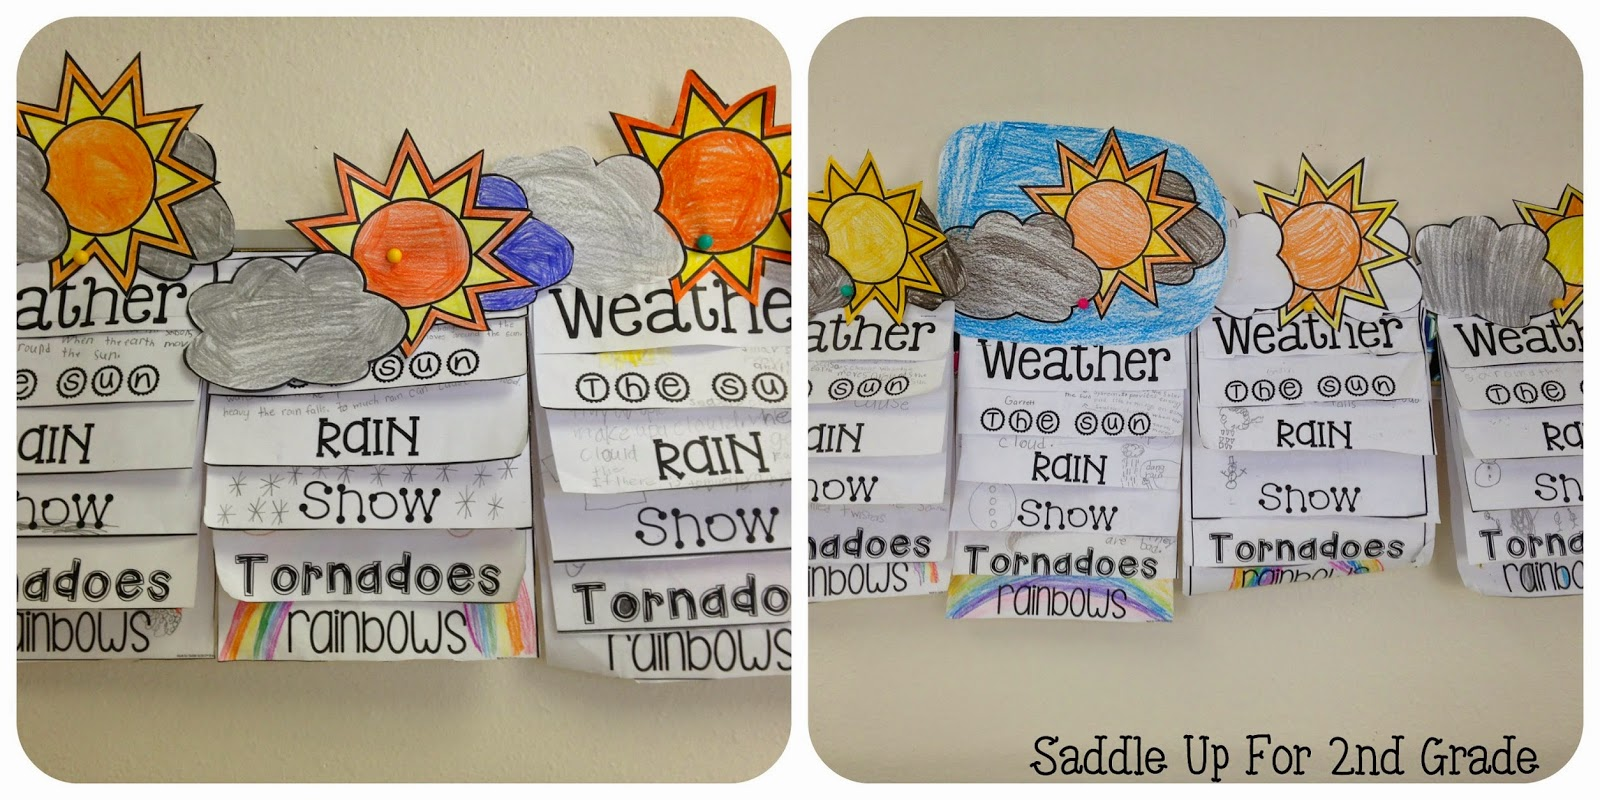 All About Weather - Saddle up for Second Grade